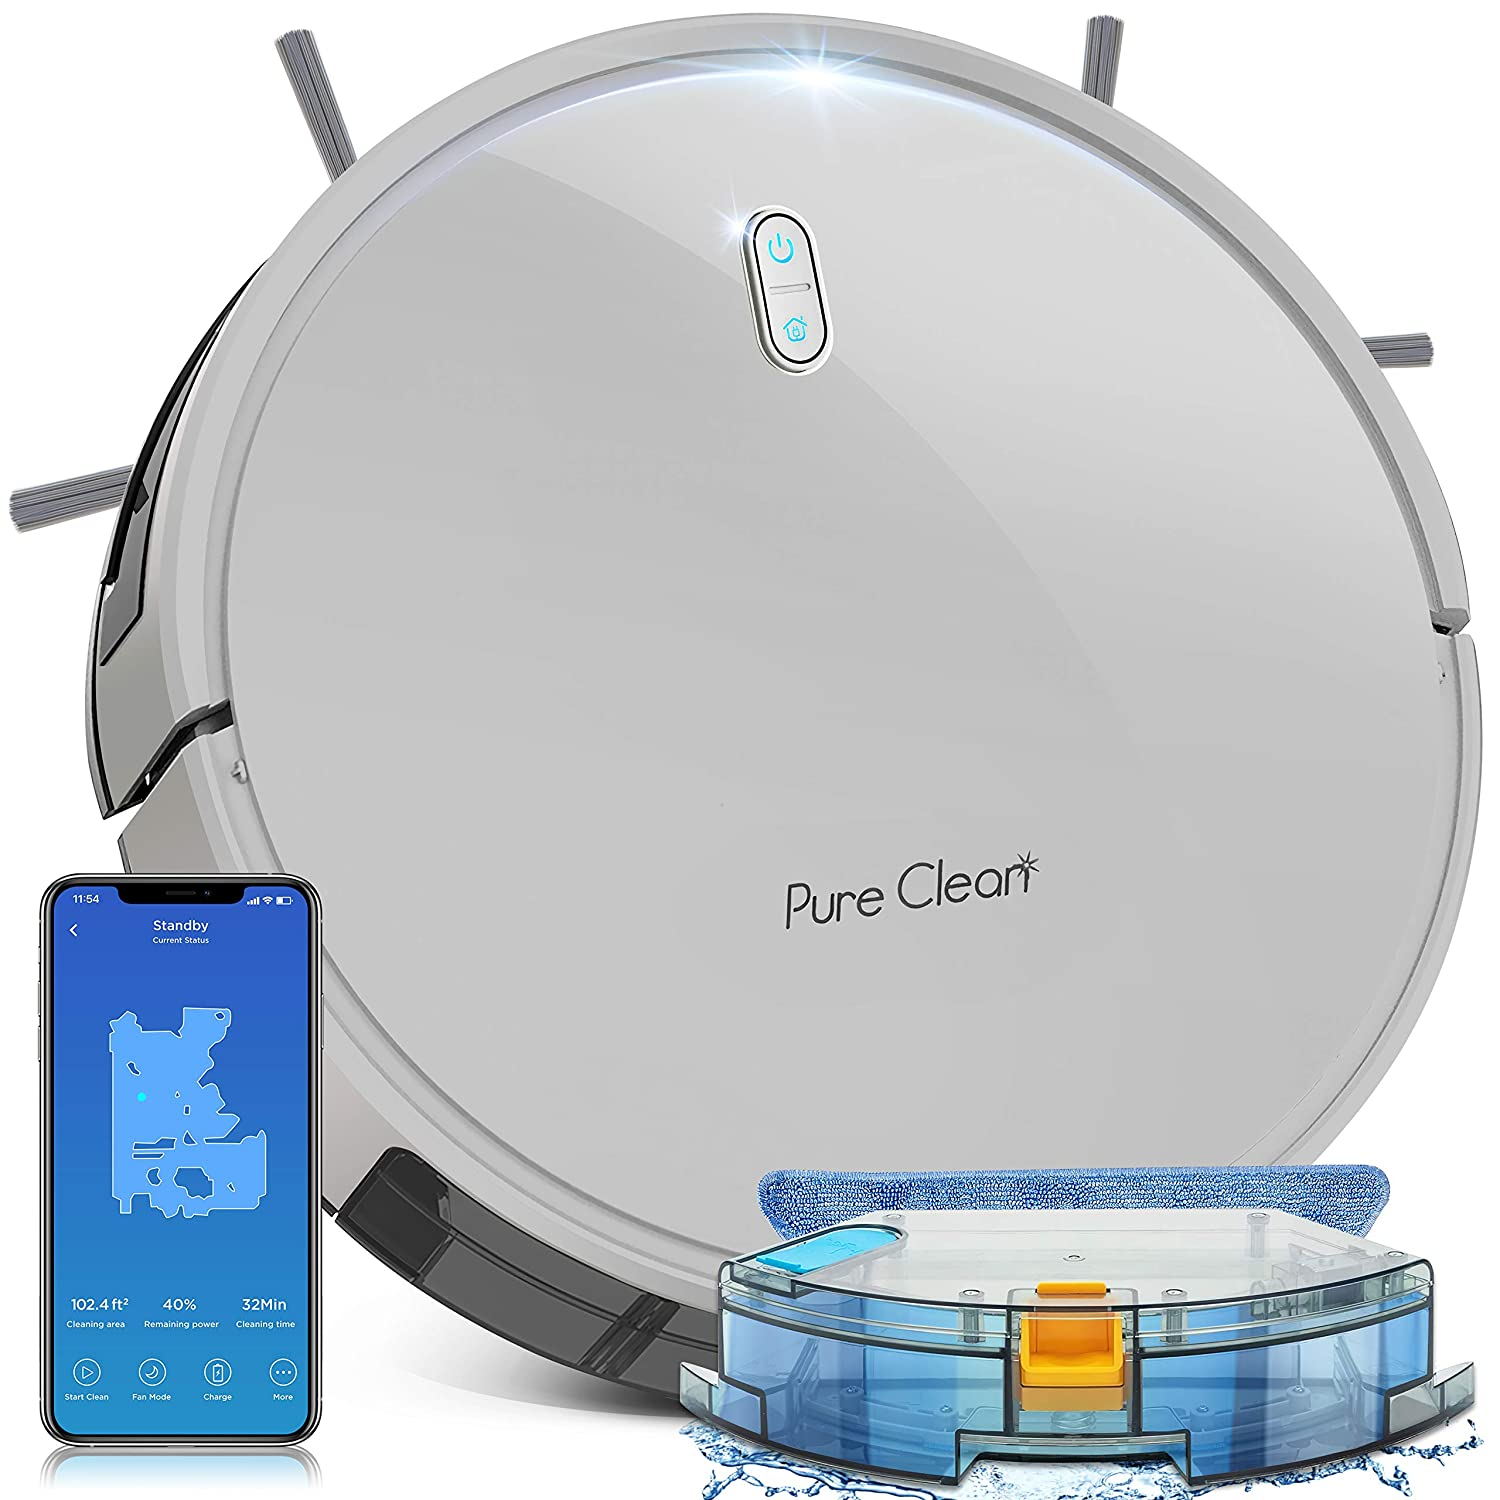 Smart WiFi Robot Vacuum Cleaner - 2700Pa Strong Suction - Self Charging Robo Vacuum Cleaner - Mobile App Alexa & Gyroscope Navigation Mapping, 2600mAh 120 Min Run Time - SereneLife PUCRC675 , White